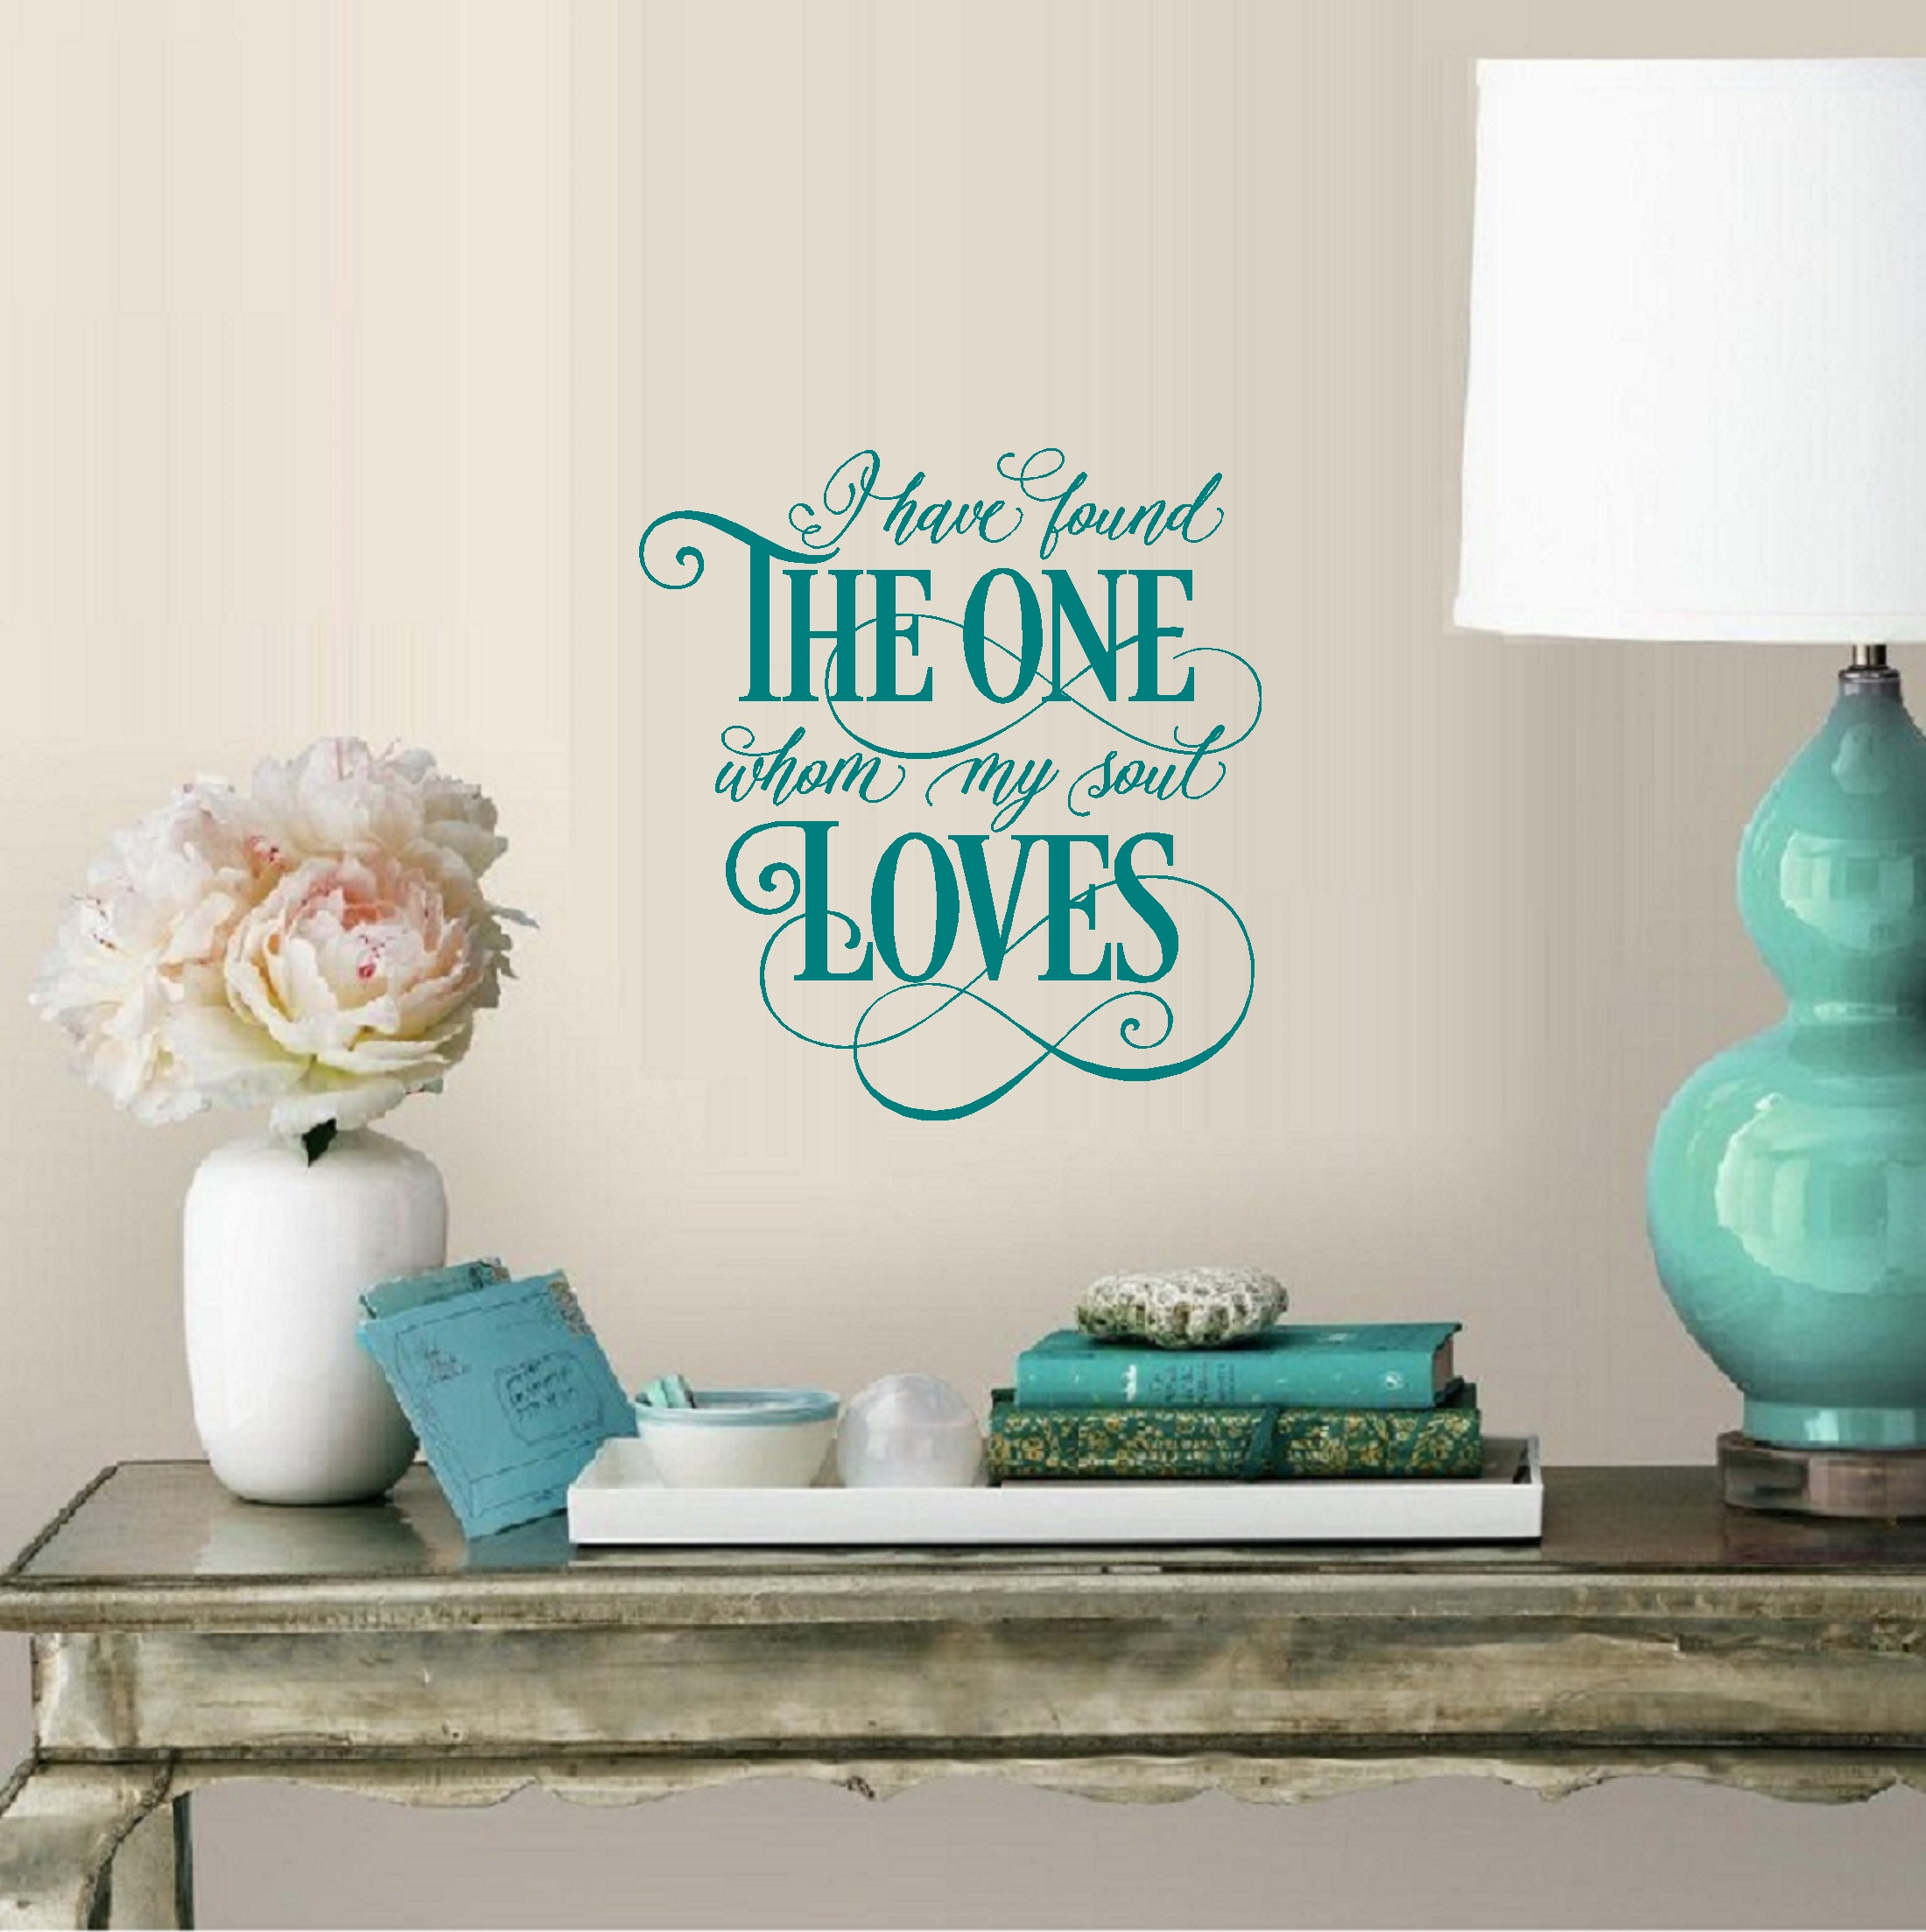 """I have found the one whom my soul Loves: Wall or Window Decal 13"""" x 14"""" Black"""